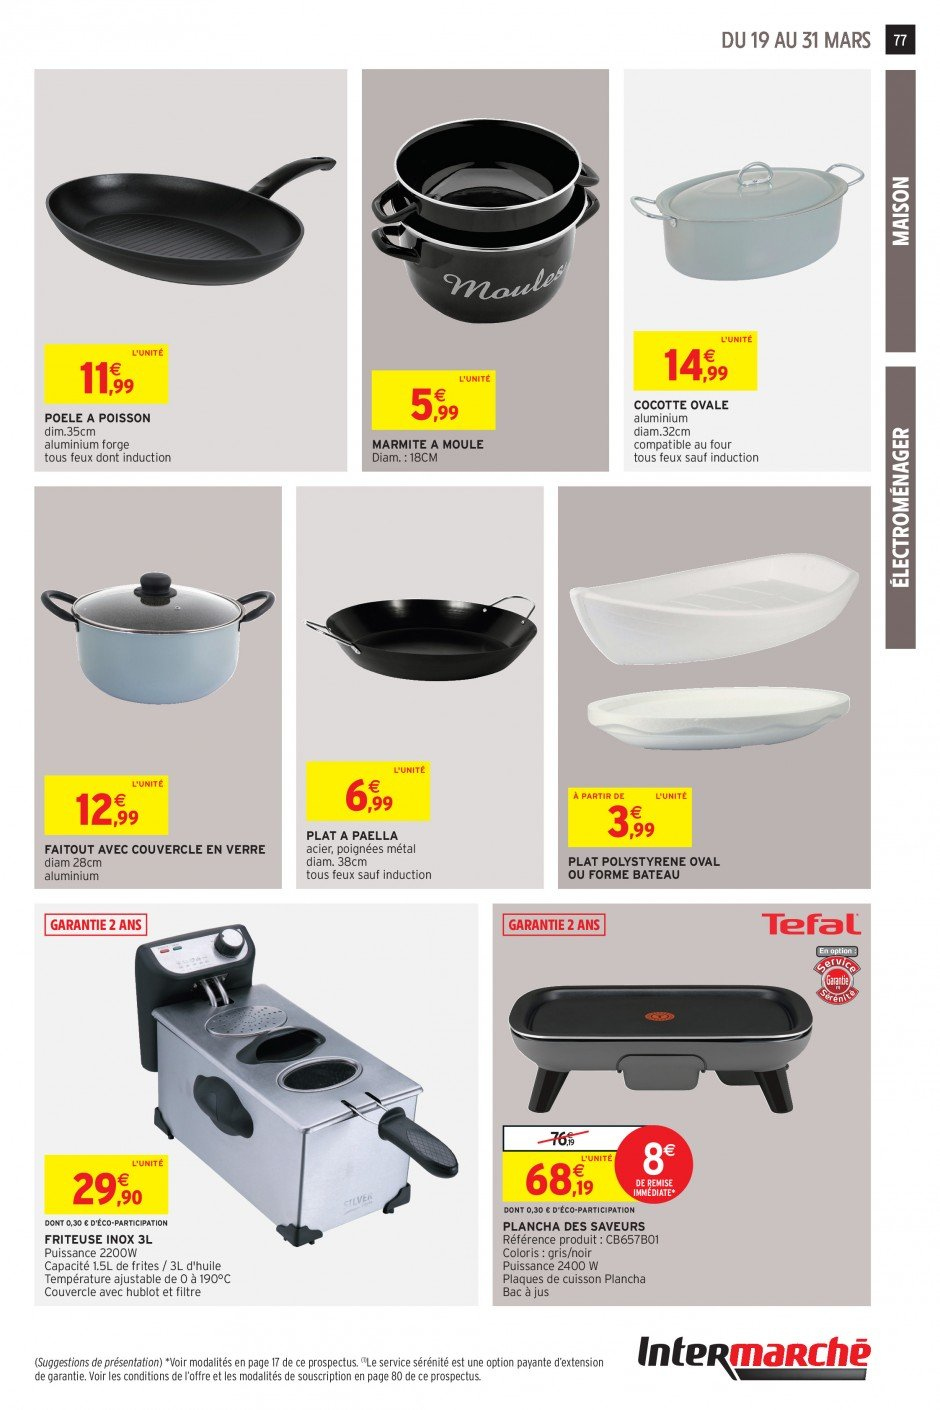 Catalogue Intermarché - 19.03.2019 - 31.03.2019. Page 74.